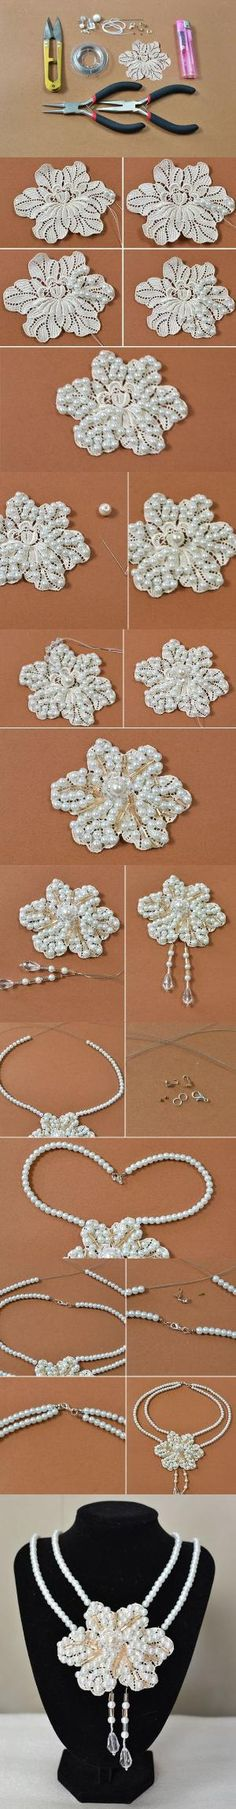 Pandahall Tutorial on How to Make a Two Strand Pearl Flower Necklace from LC.Pandahall.com | Jewelry Making Tutorials & Tips 2 | Pinterest by Jersica